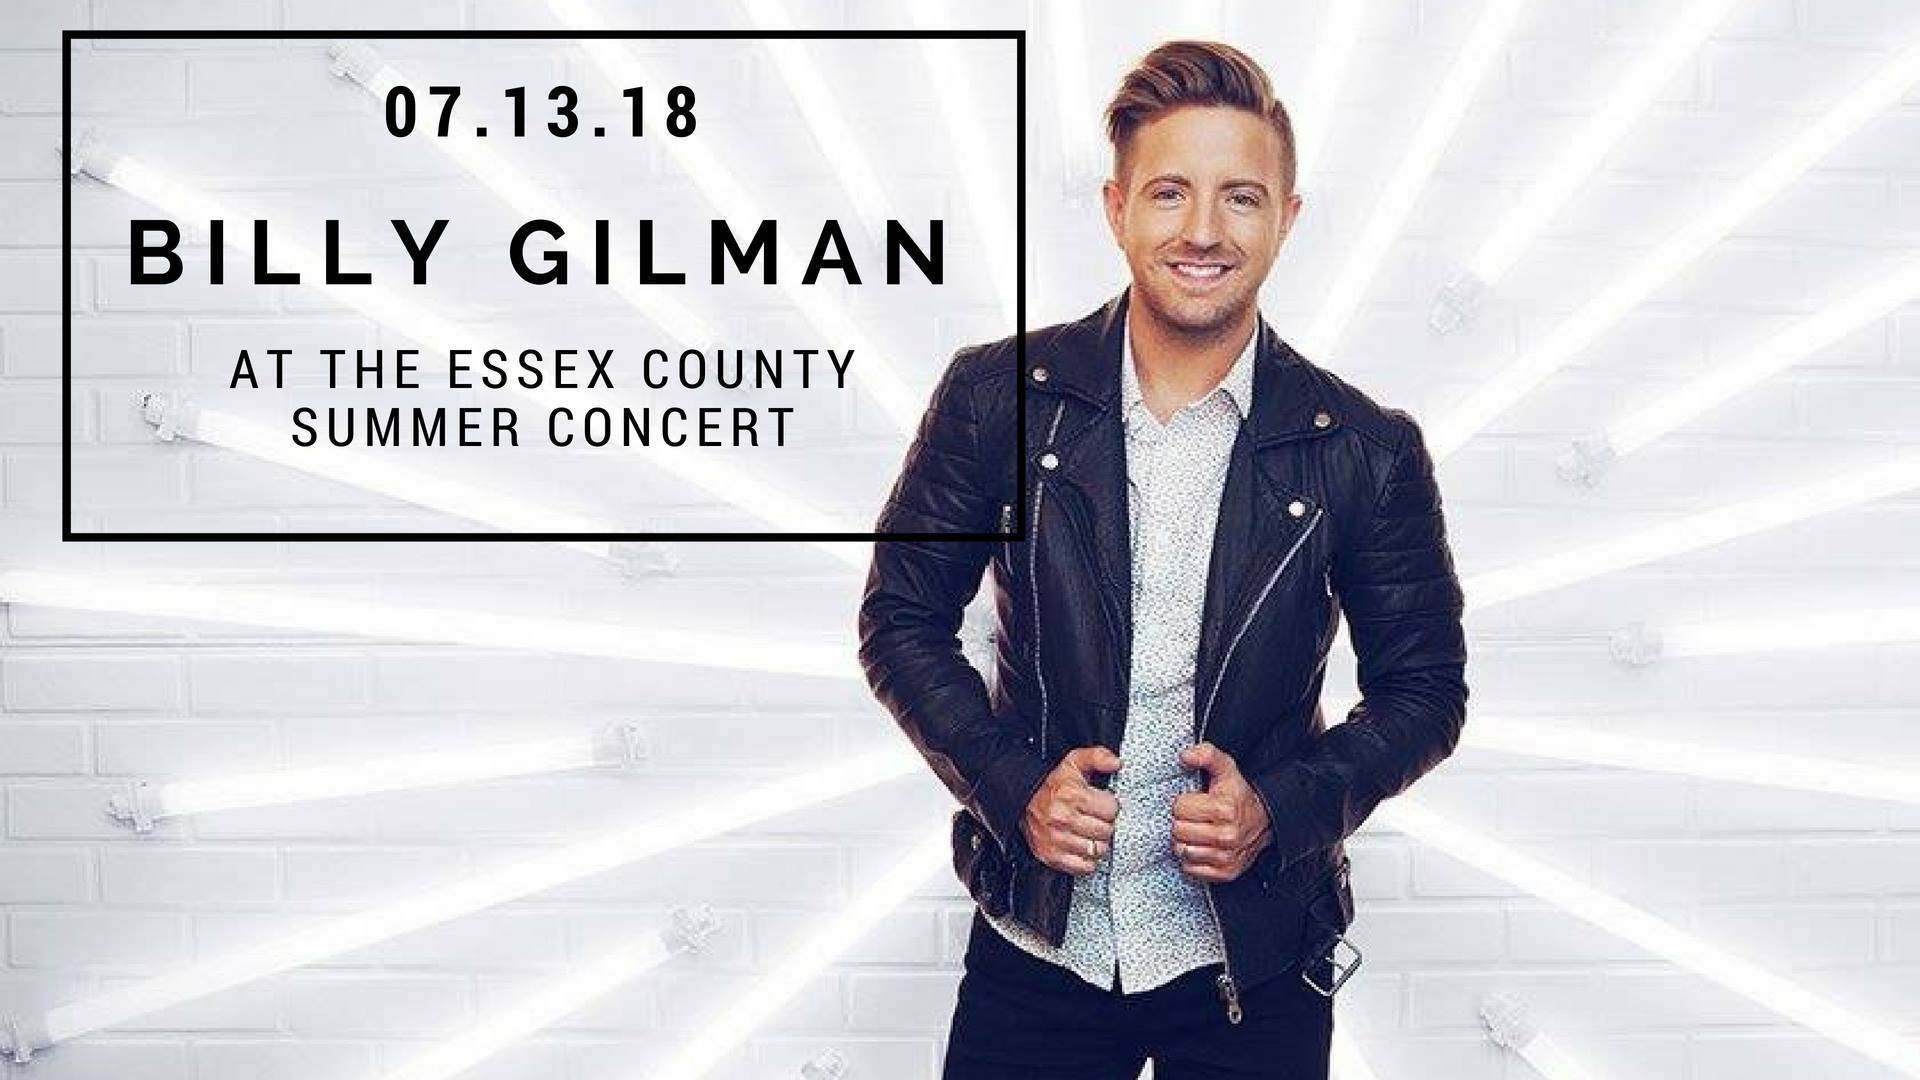 faac22431a3704eadc5a_summer_concert_july_13_billy_gilman_2018.jpg